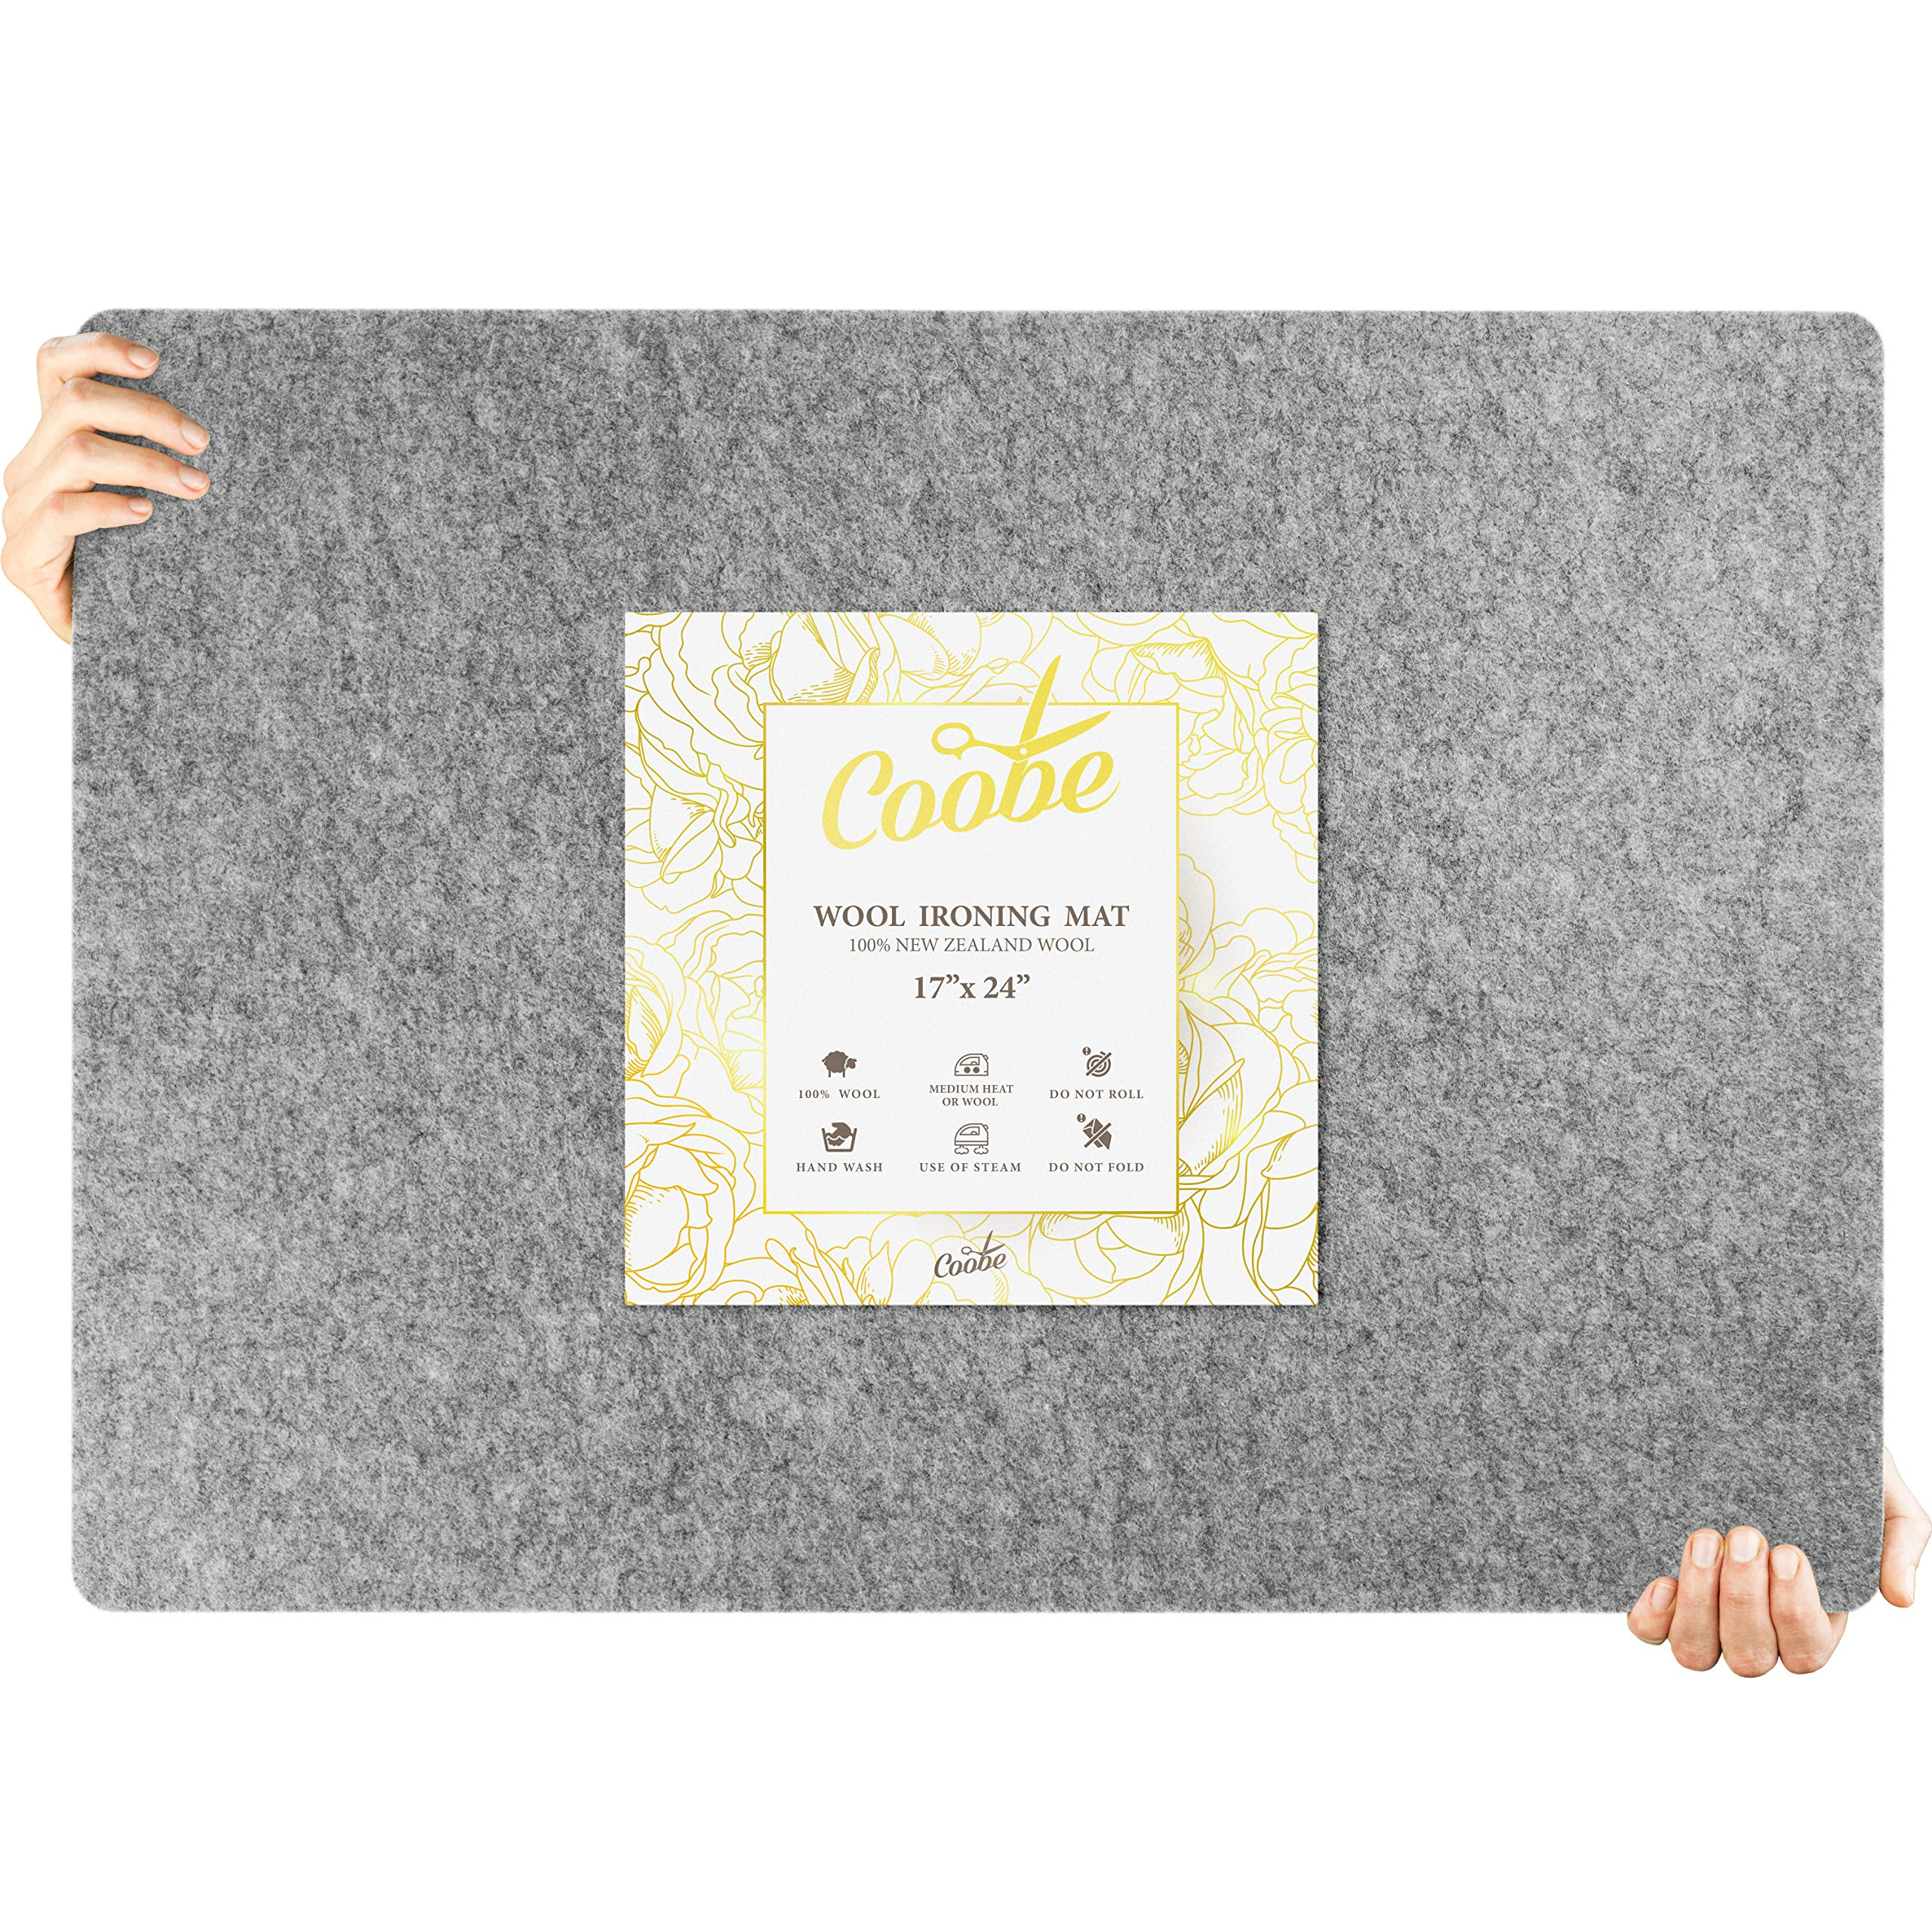 17'' X 24'' Wool Pressing Mat for Quilting Large Size - 100% New Zealand Wool Ironing Pad, Perfect for All Ironing Station